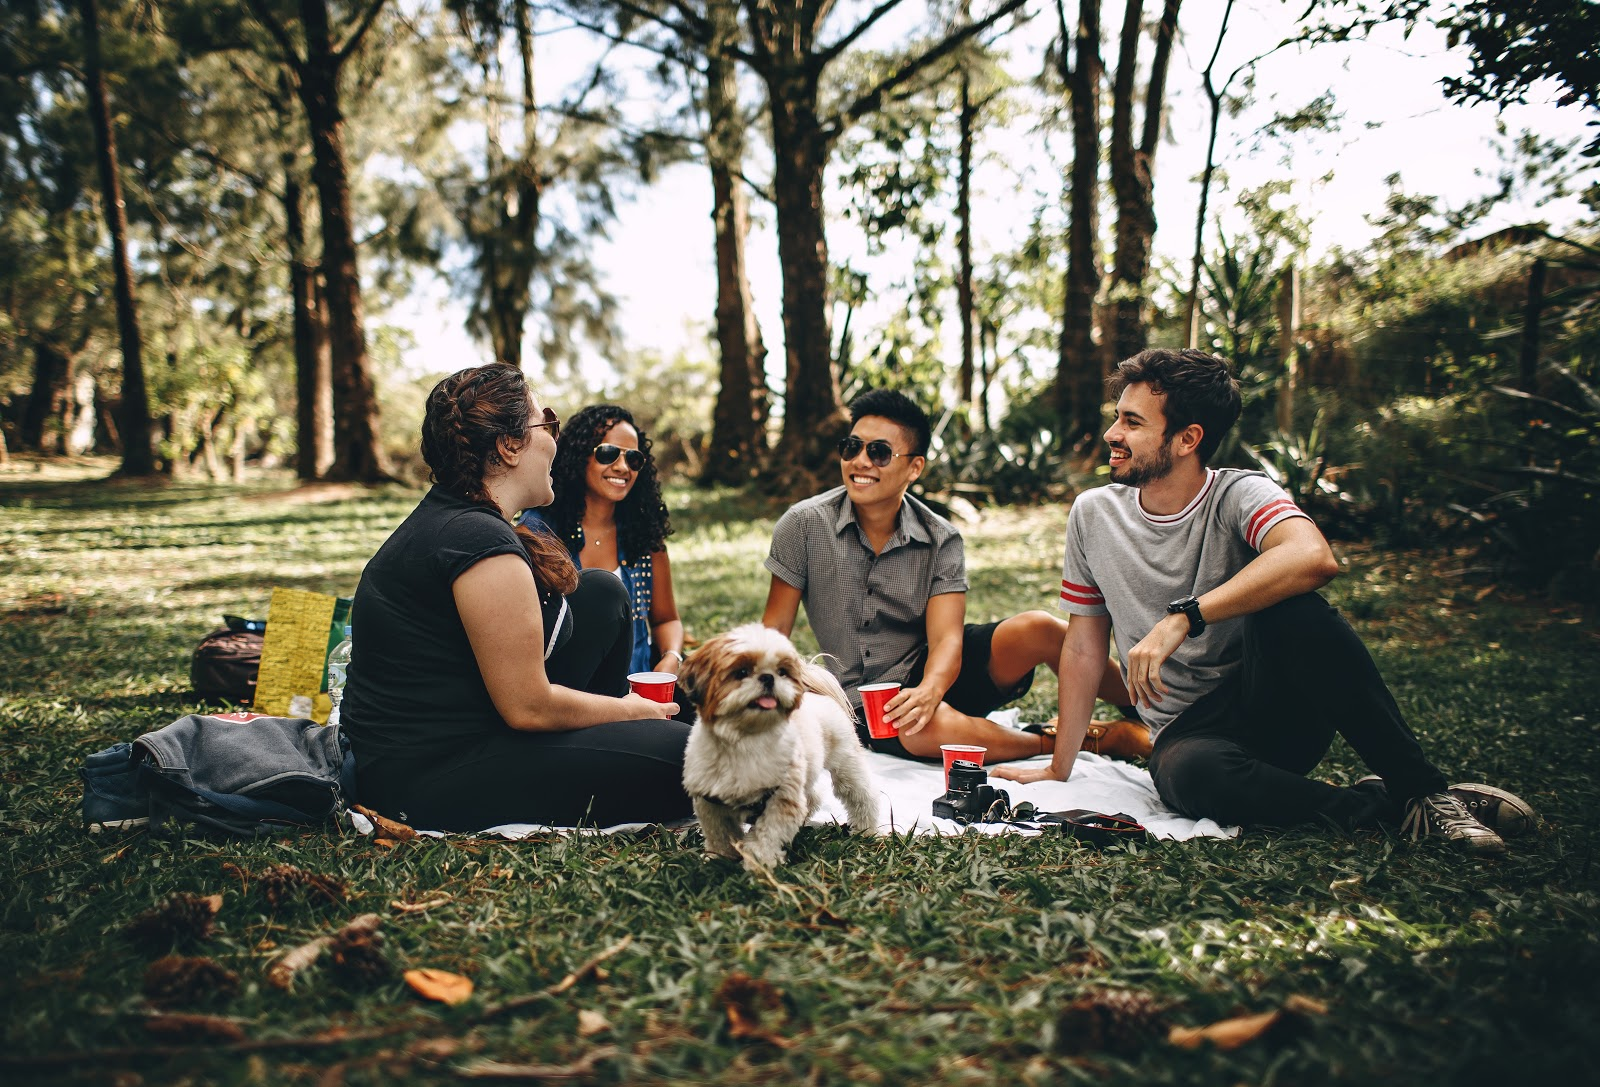 A group of friends enjoys time outside with an adopted dog.